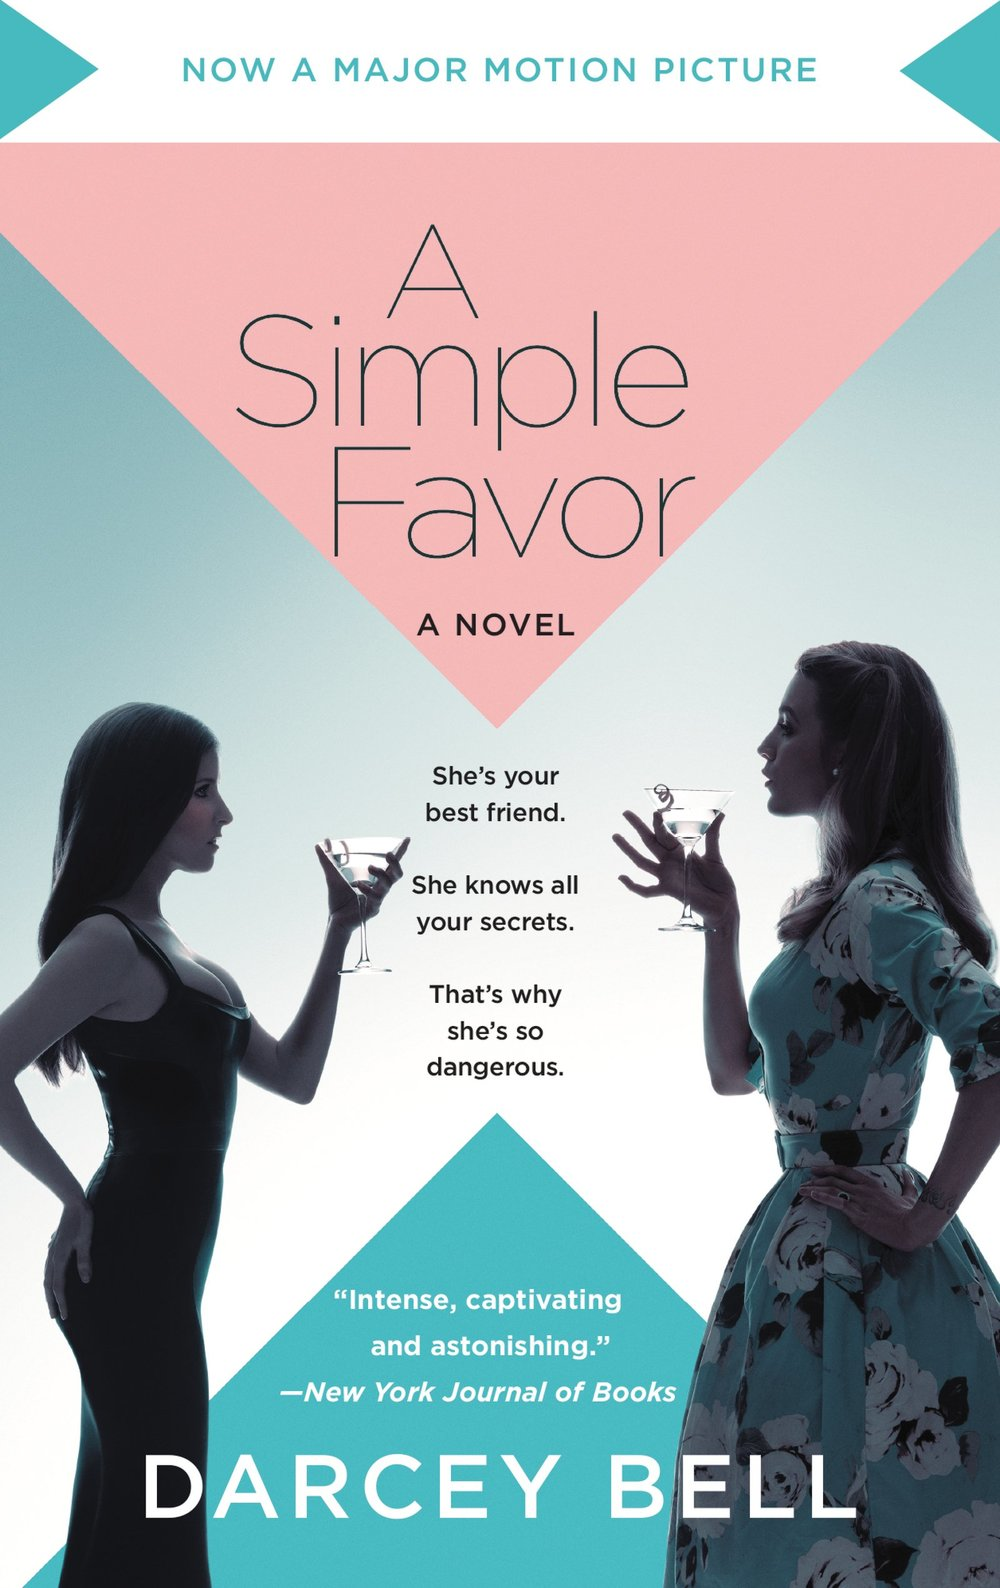 a simple favor by darcey bell.jpg